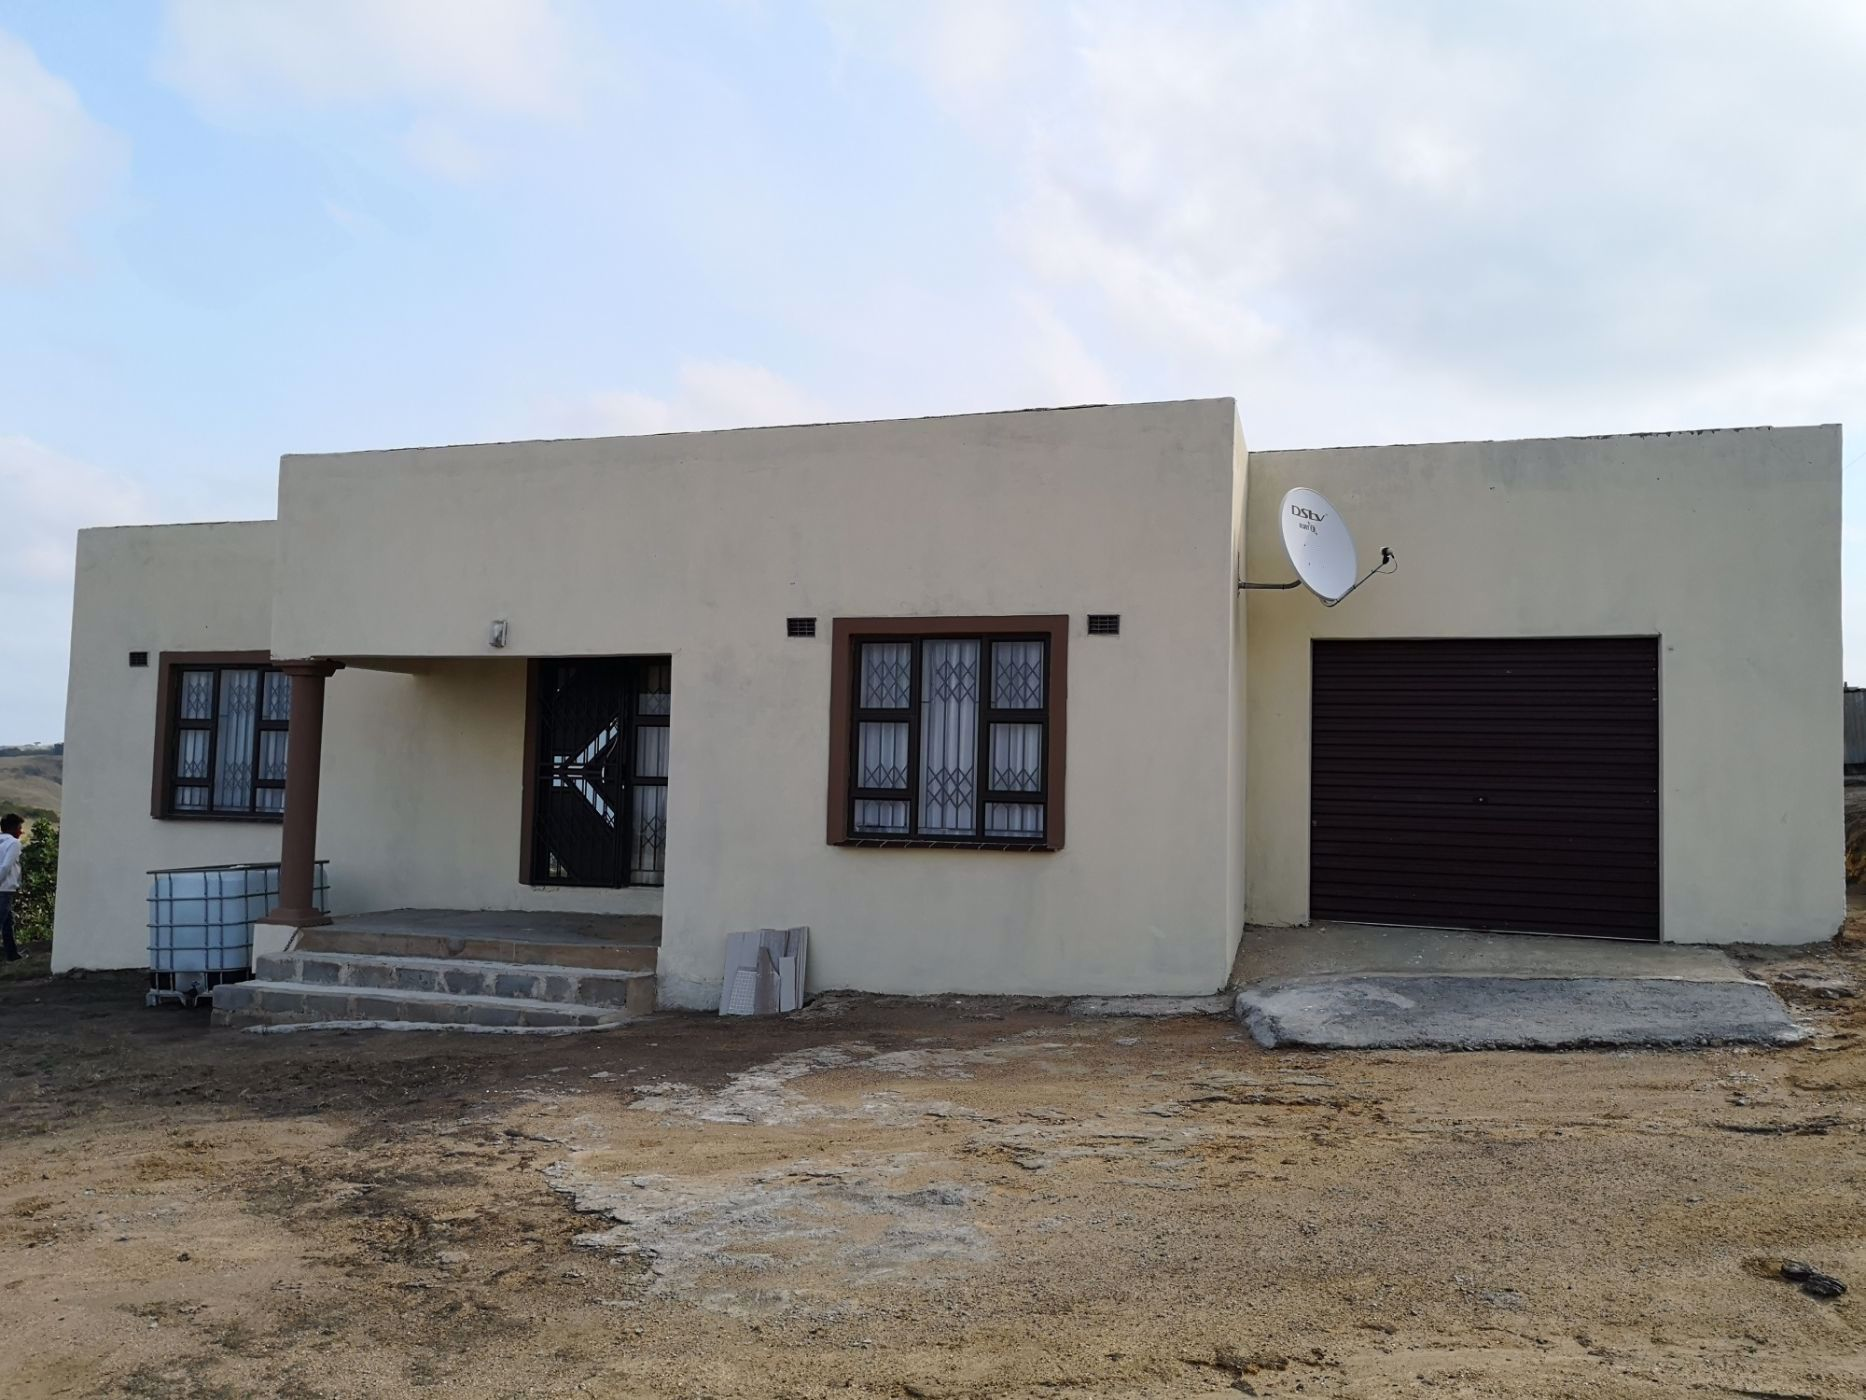 3 bedroom house for sale in Port Shepstone Rural